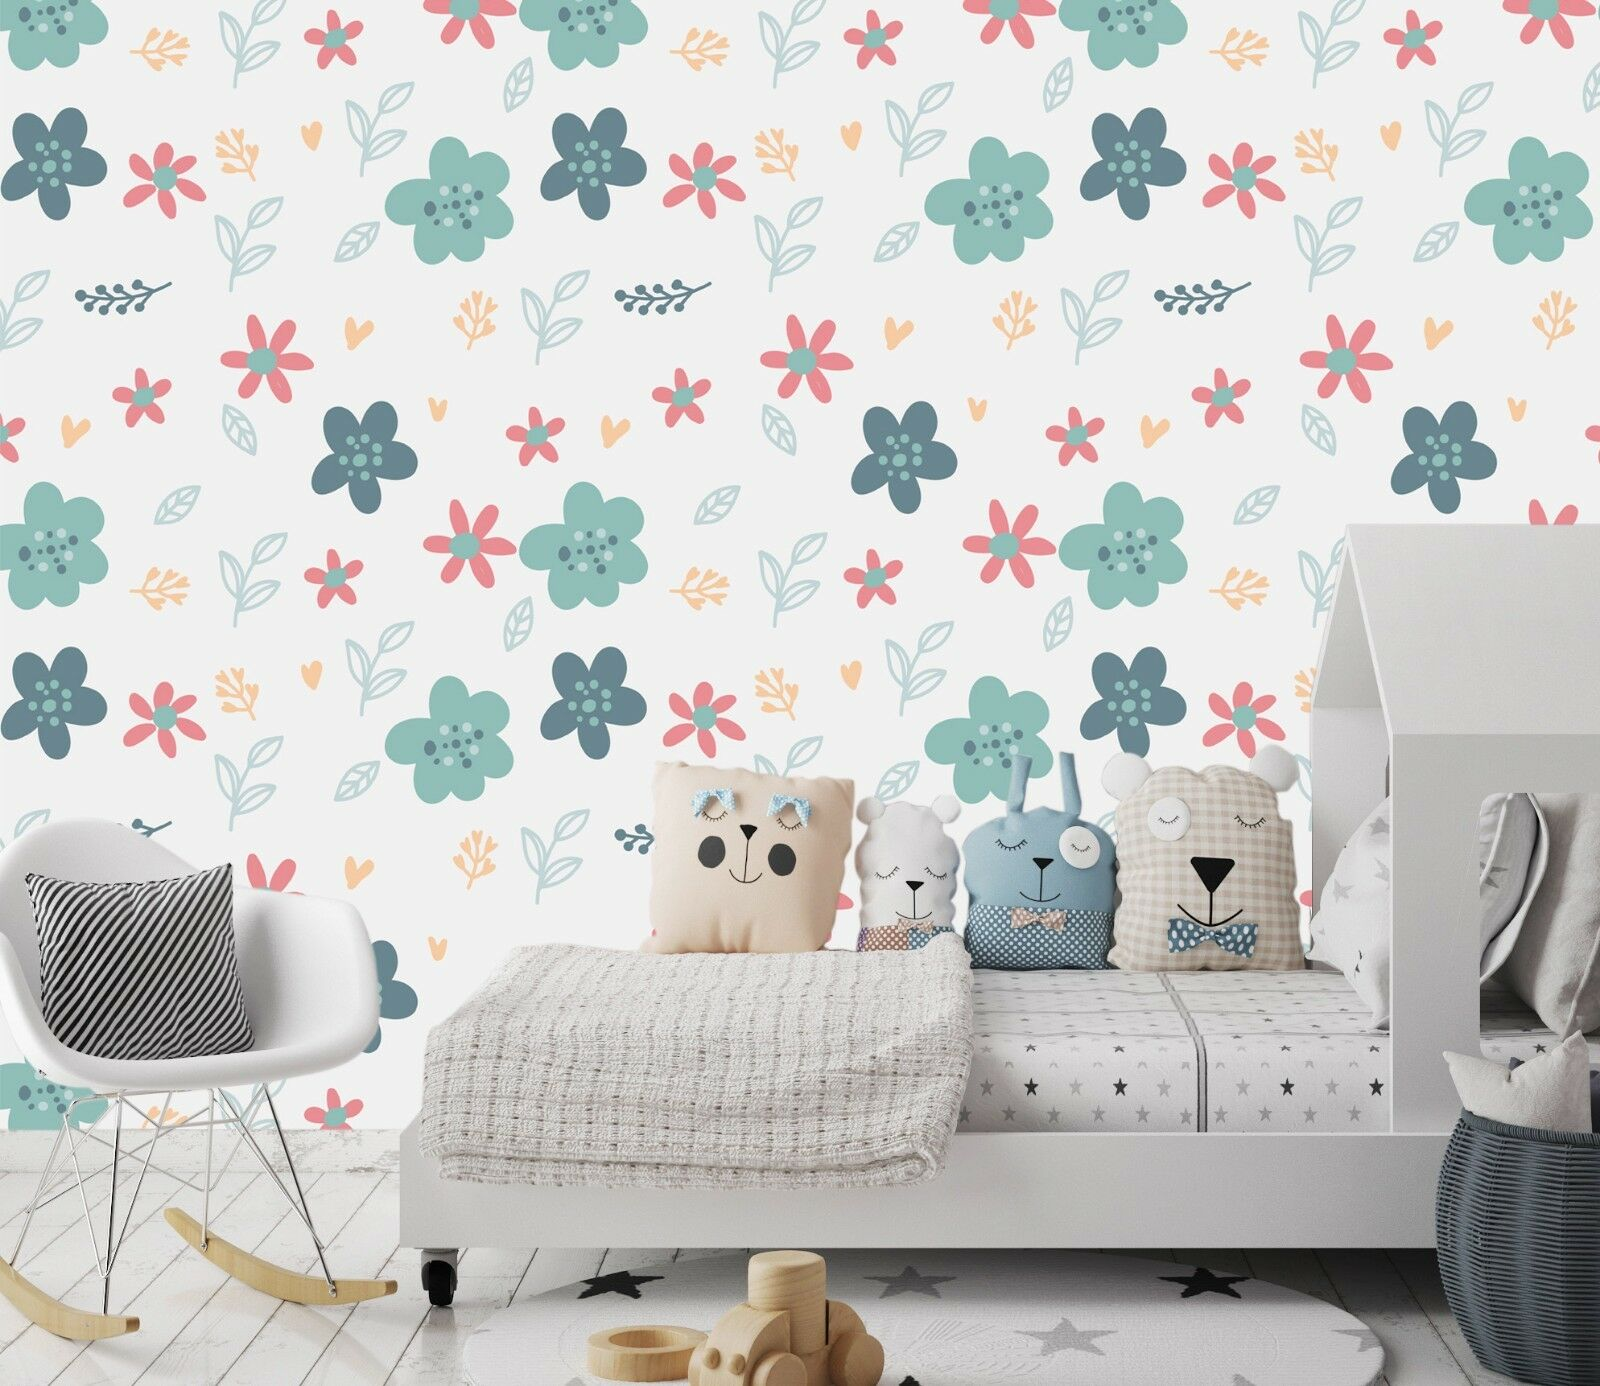 3D Green Flower 76 Wall Paper Exclusive MXY Wallpaper Mural Decal Indoor